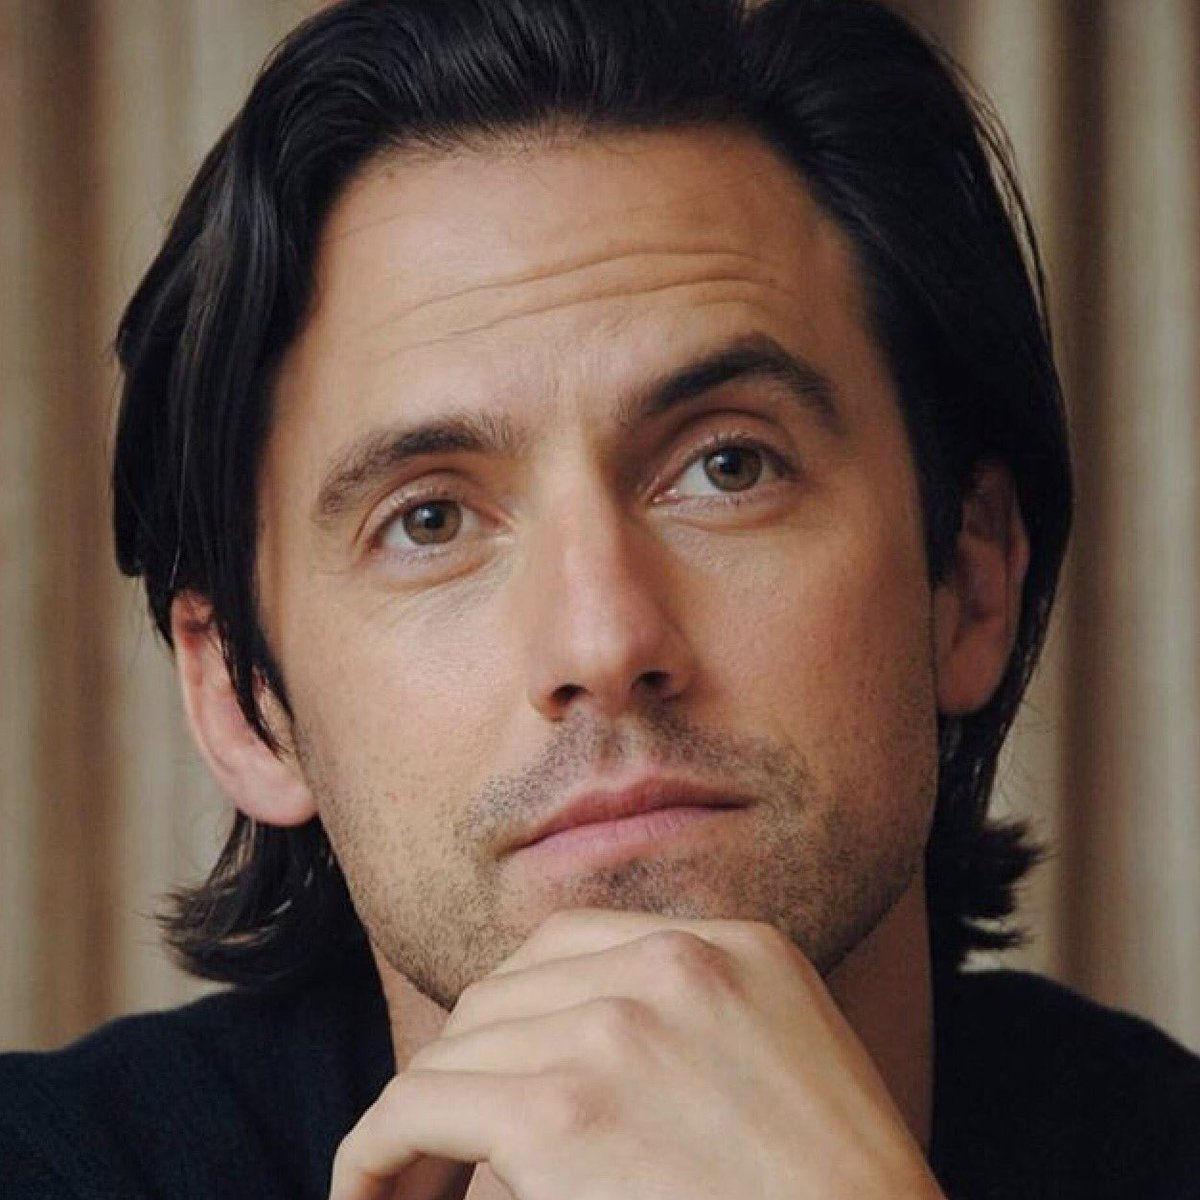 It&#39;s easy to FALL in LOVE with this MAN! #ThisIsUs  #Jack <br>http://pic.twitter.com/mEu50hX1jO